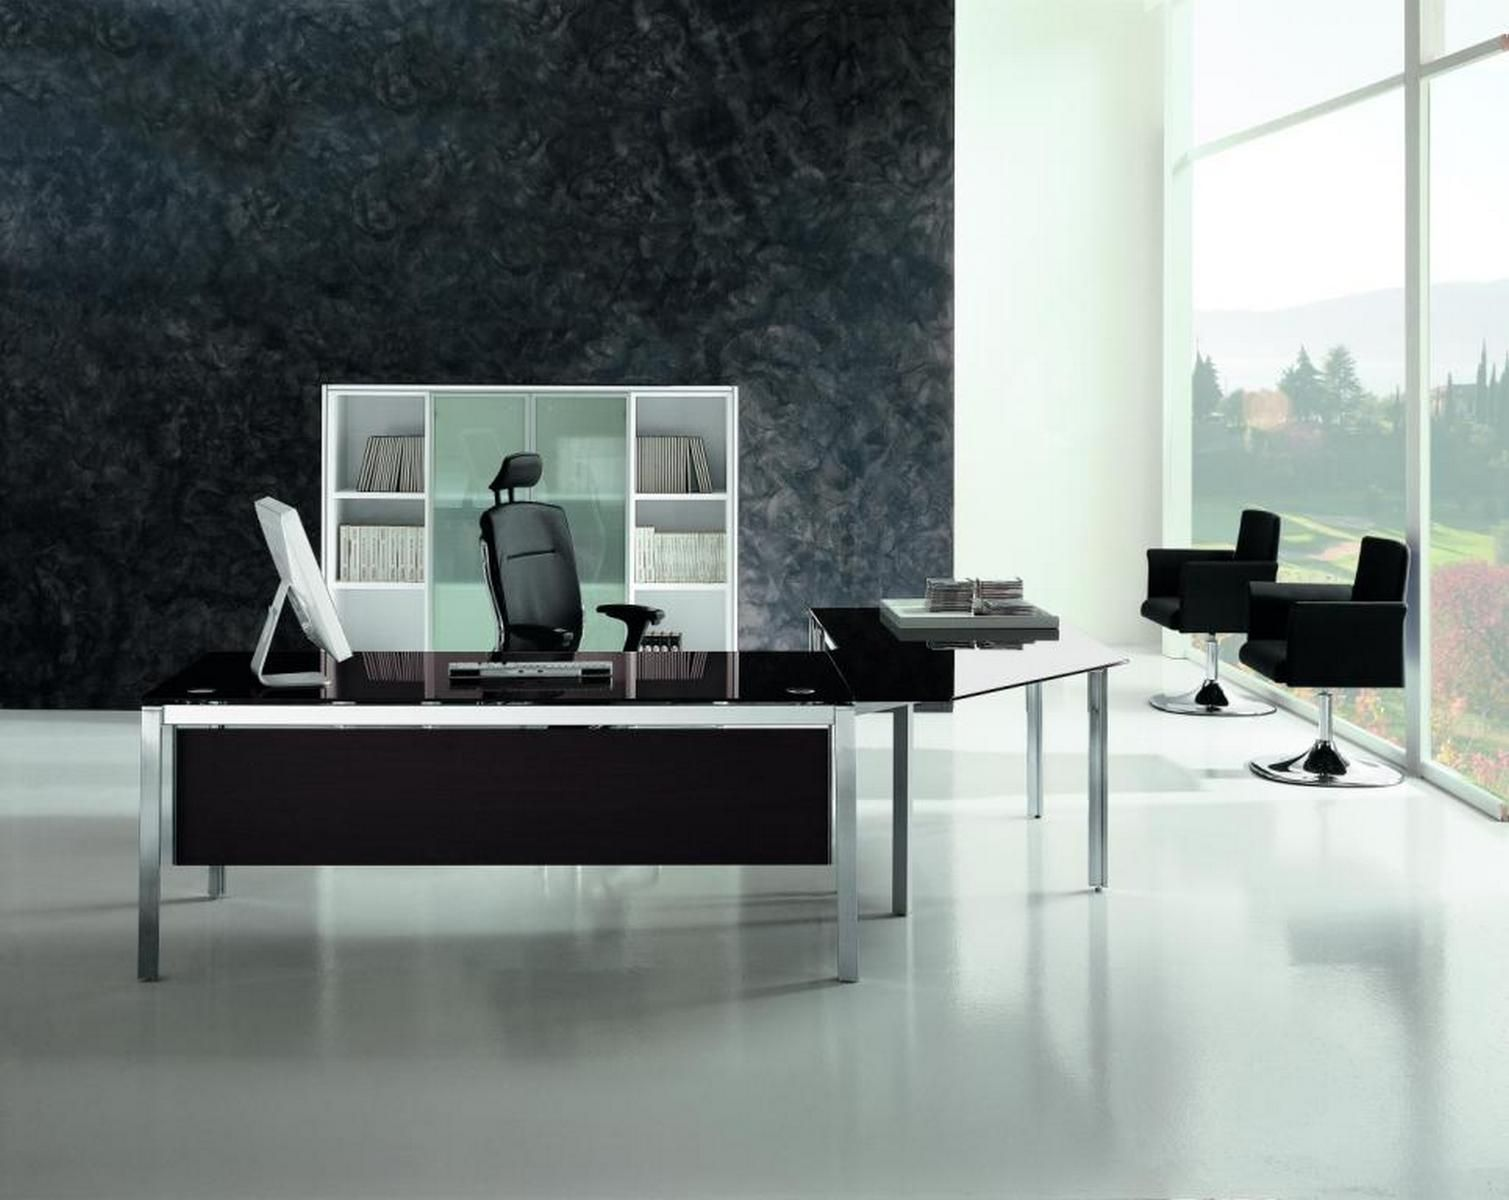 X4 Office Furniture - Find this pin and more on x4 benching desking executive conference modern contemporary office desks